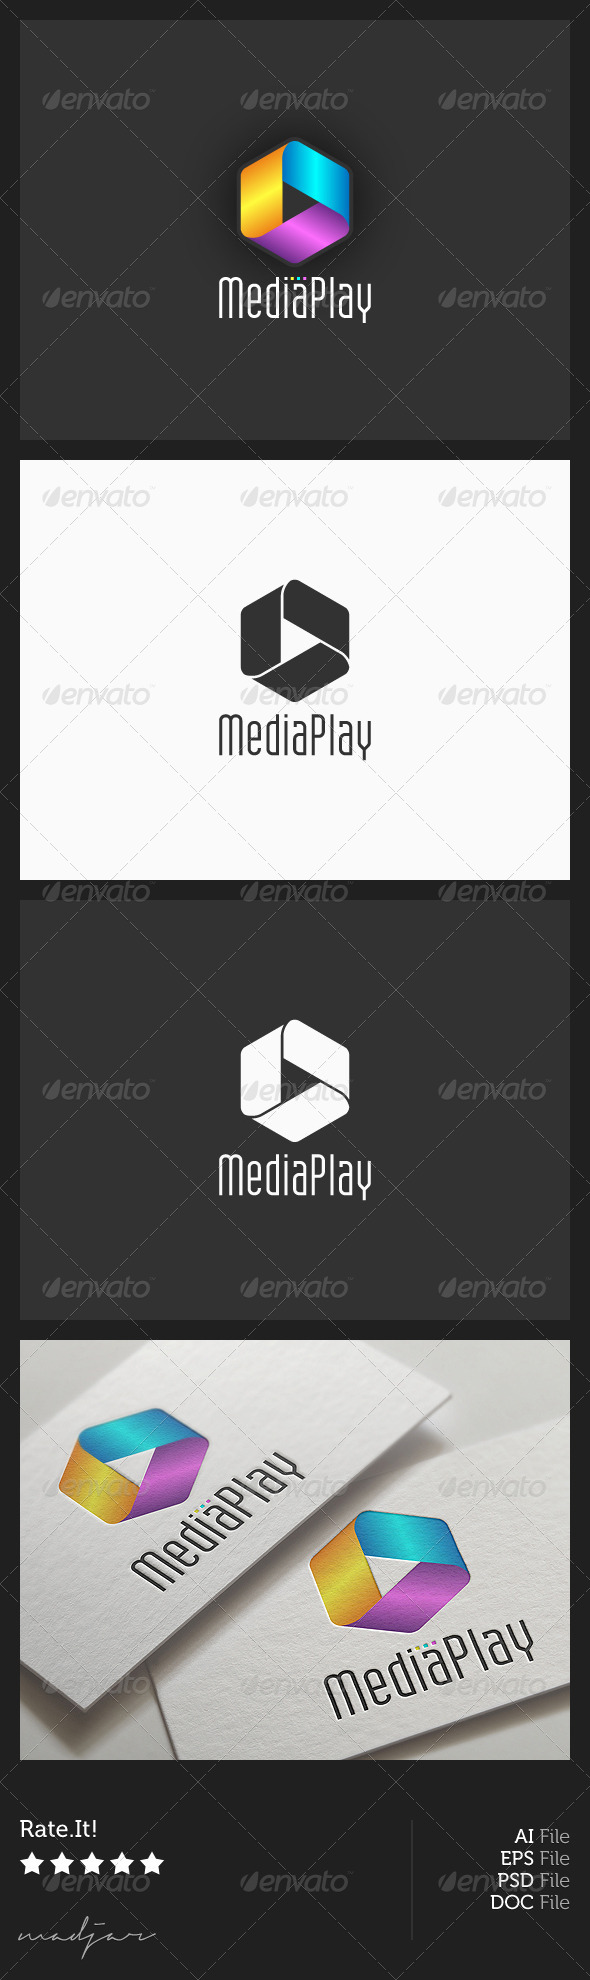 Media Play Logo - Symbols Logo Templates